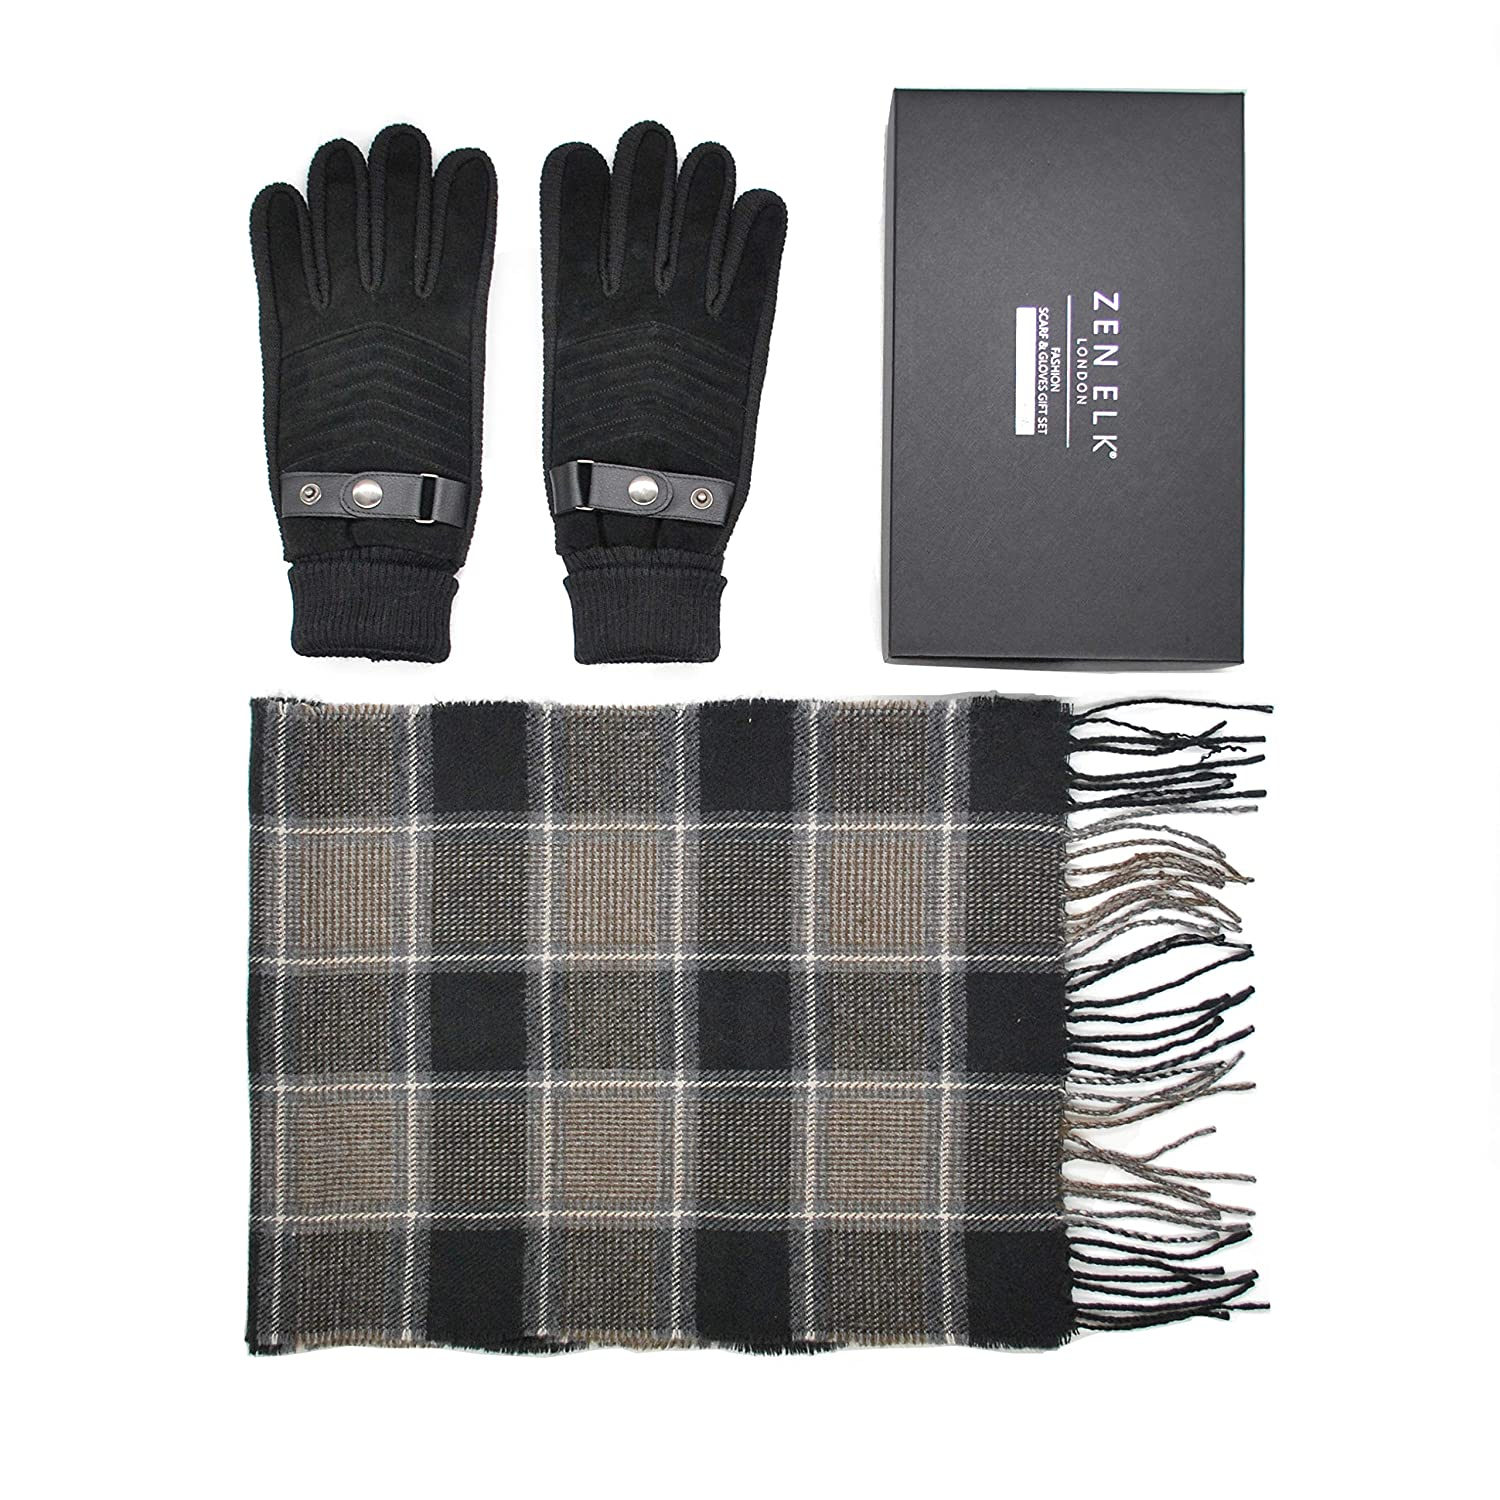 Men's Suede Grip Gloves and Check Scarf Gift Set #72 (M/L)